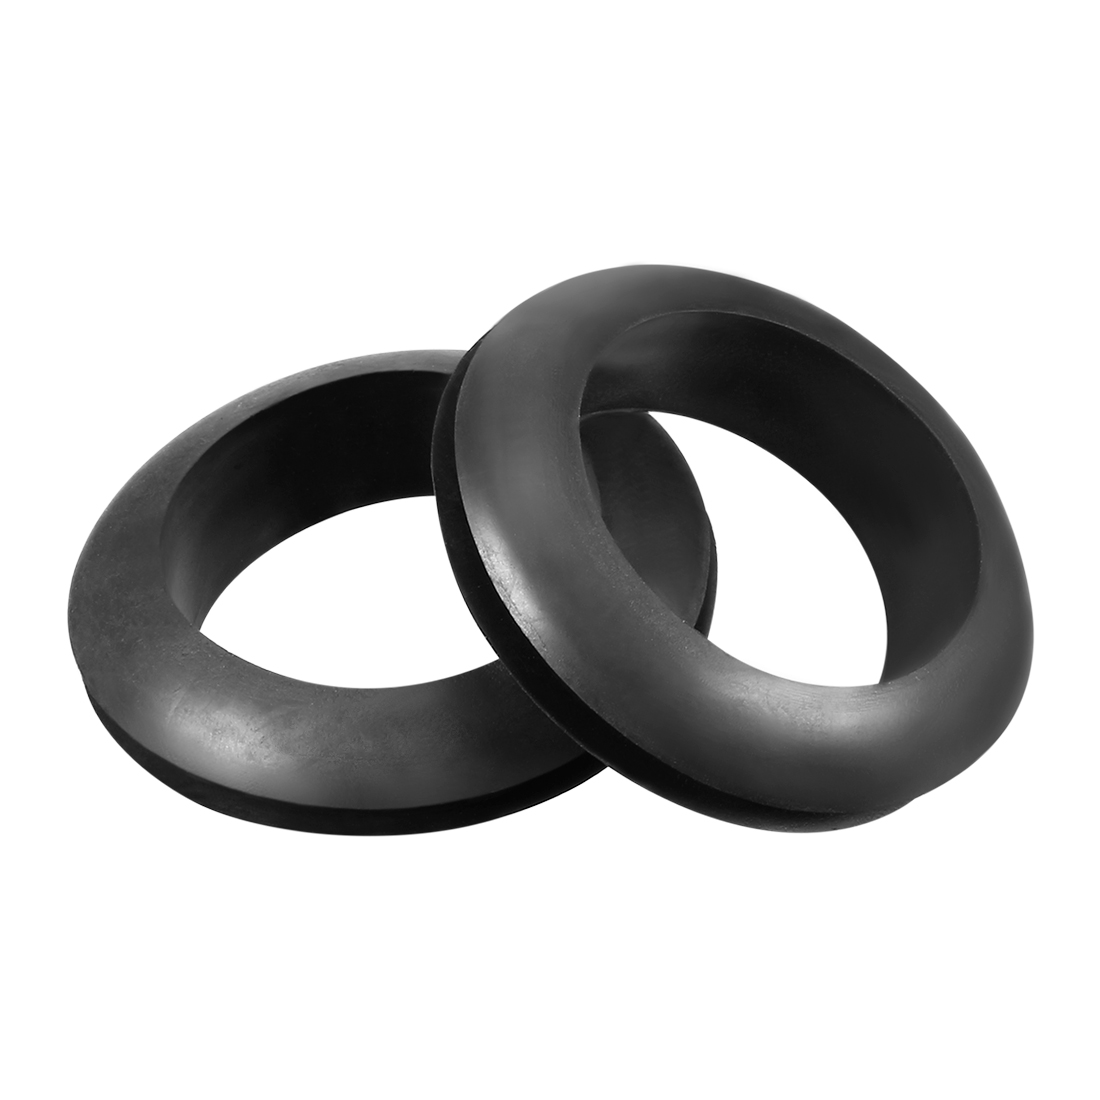 Wire Protector Oil Resistant Armature Rubber Grommet 27mm Mounting 20Pcs Black